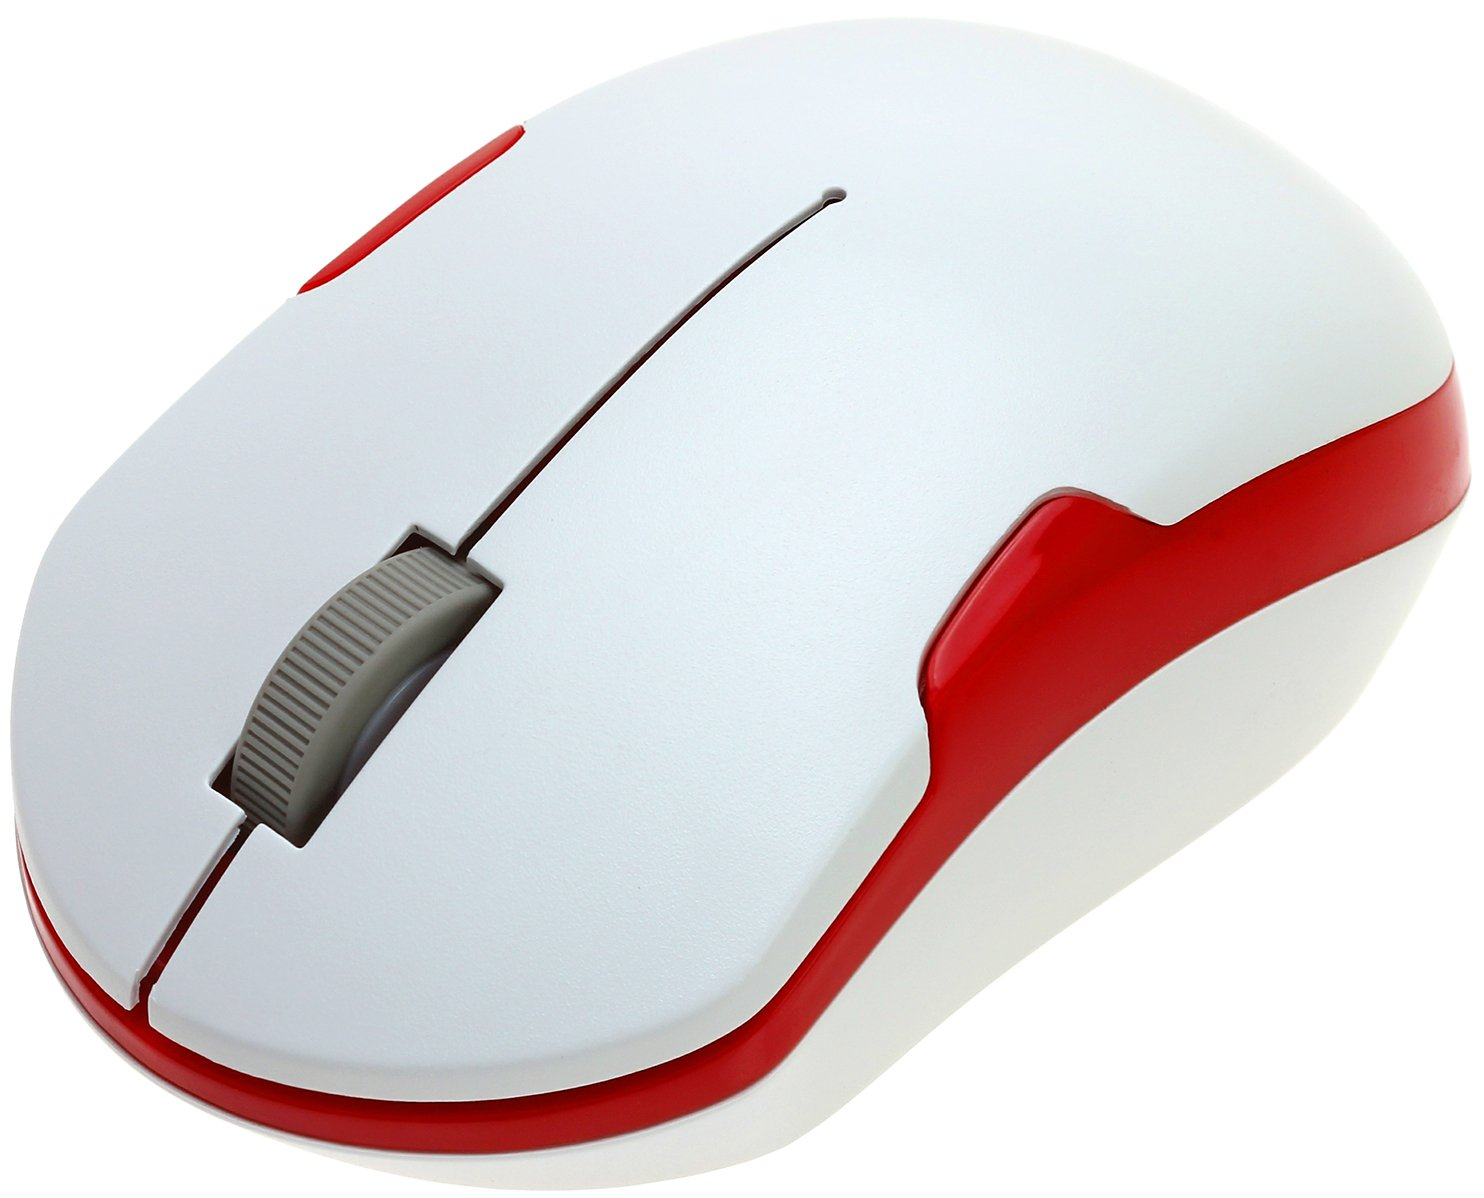 ShhhMouse Wireless Silent Noiseless Clickless Mobile Optical Mouse